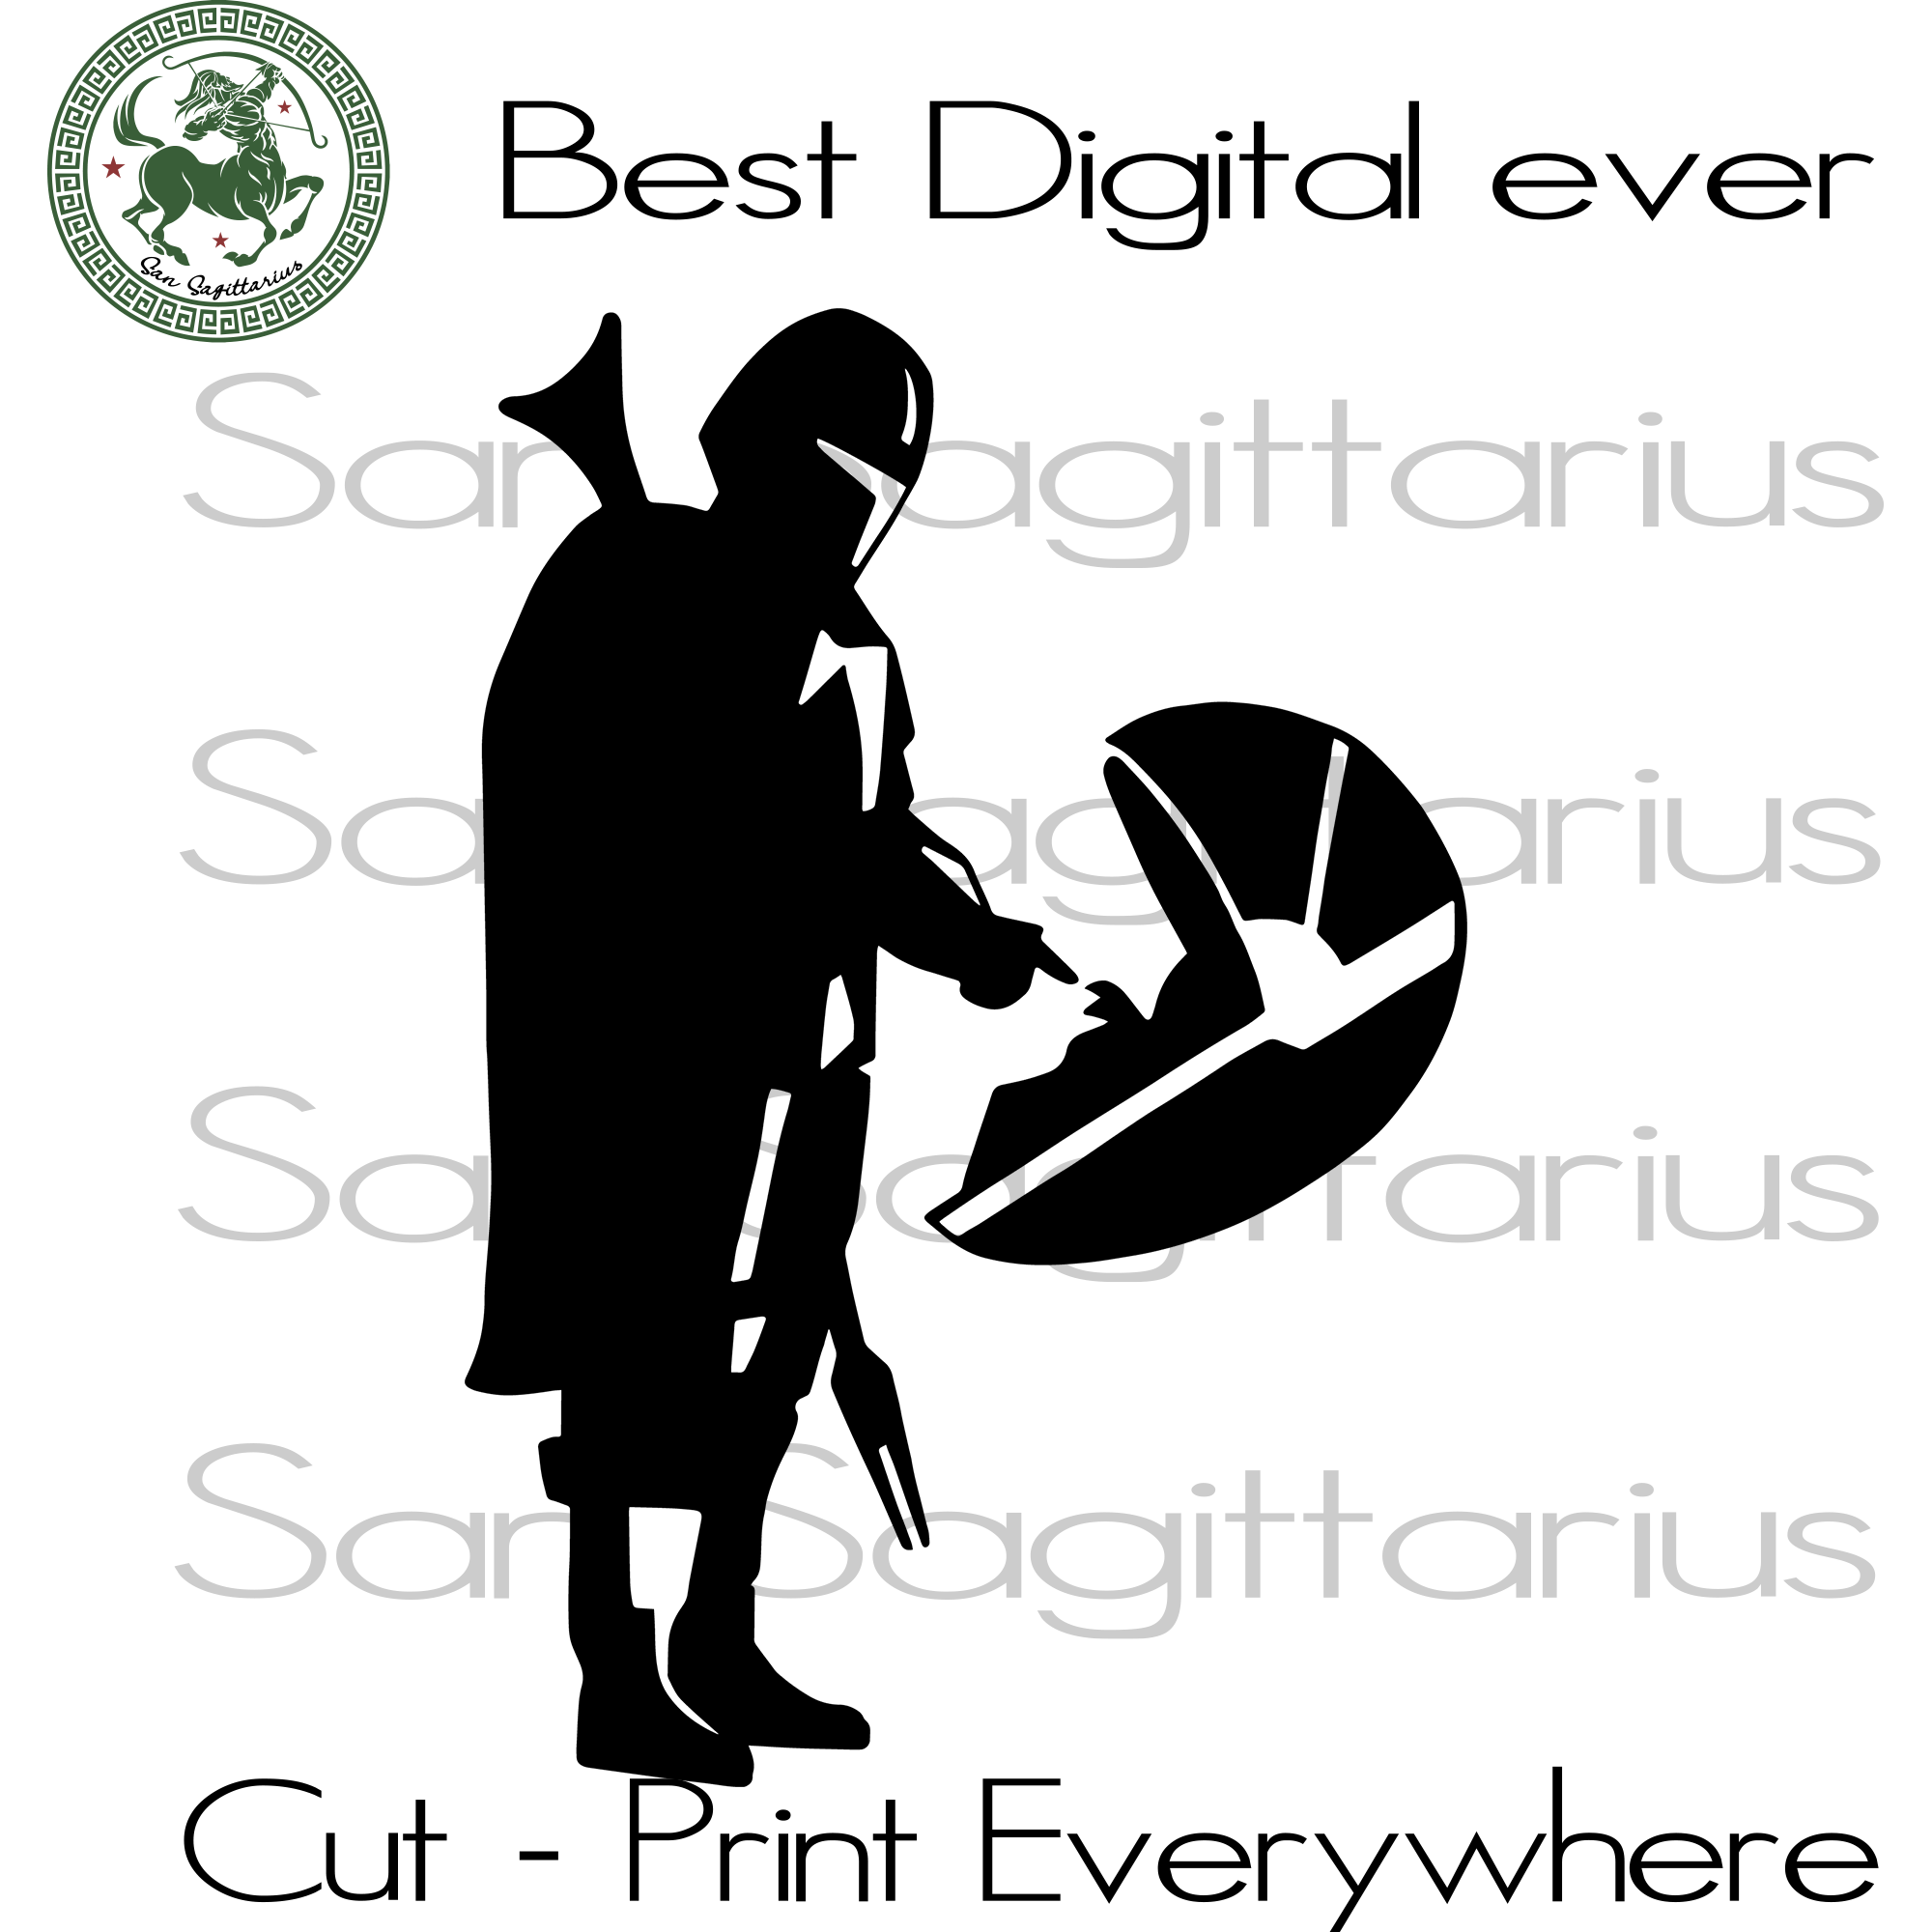 Mandalorian Baby Yoda Movie Lover SVG Files For Silhouette Cricut Files Instant Download | San Sagittarius